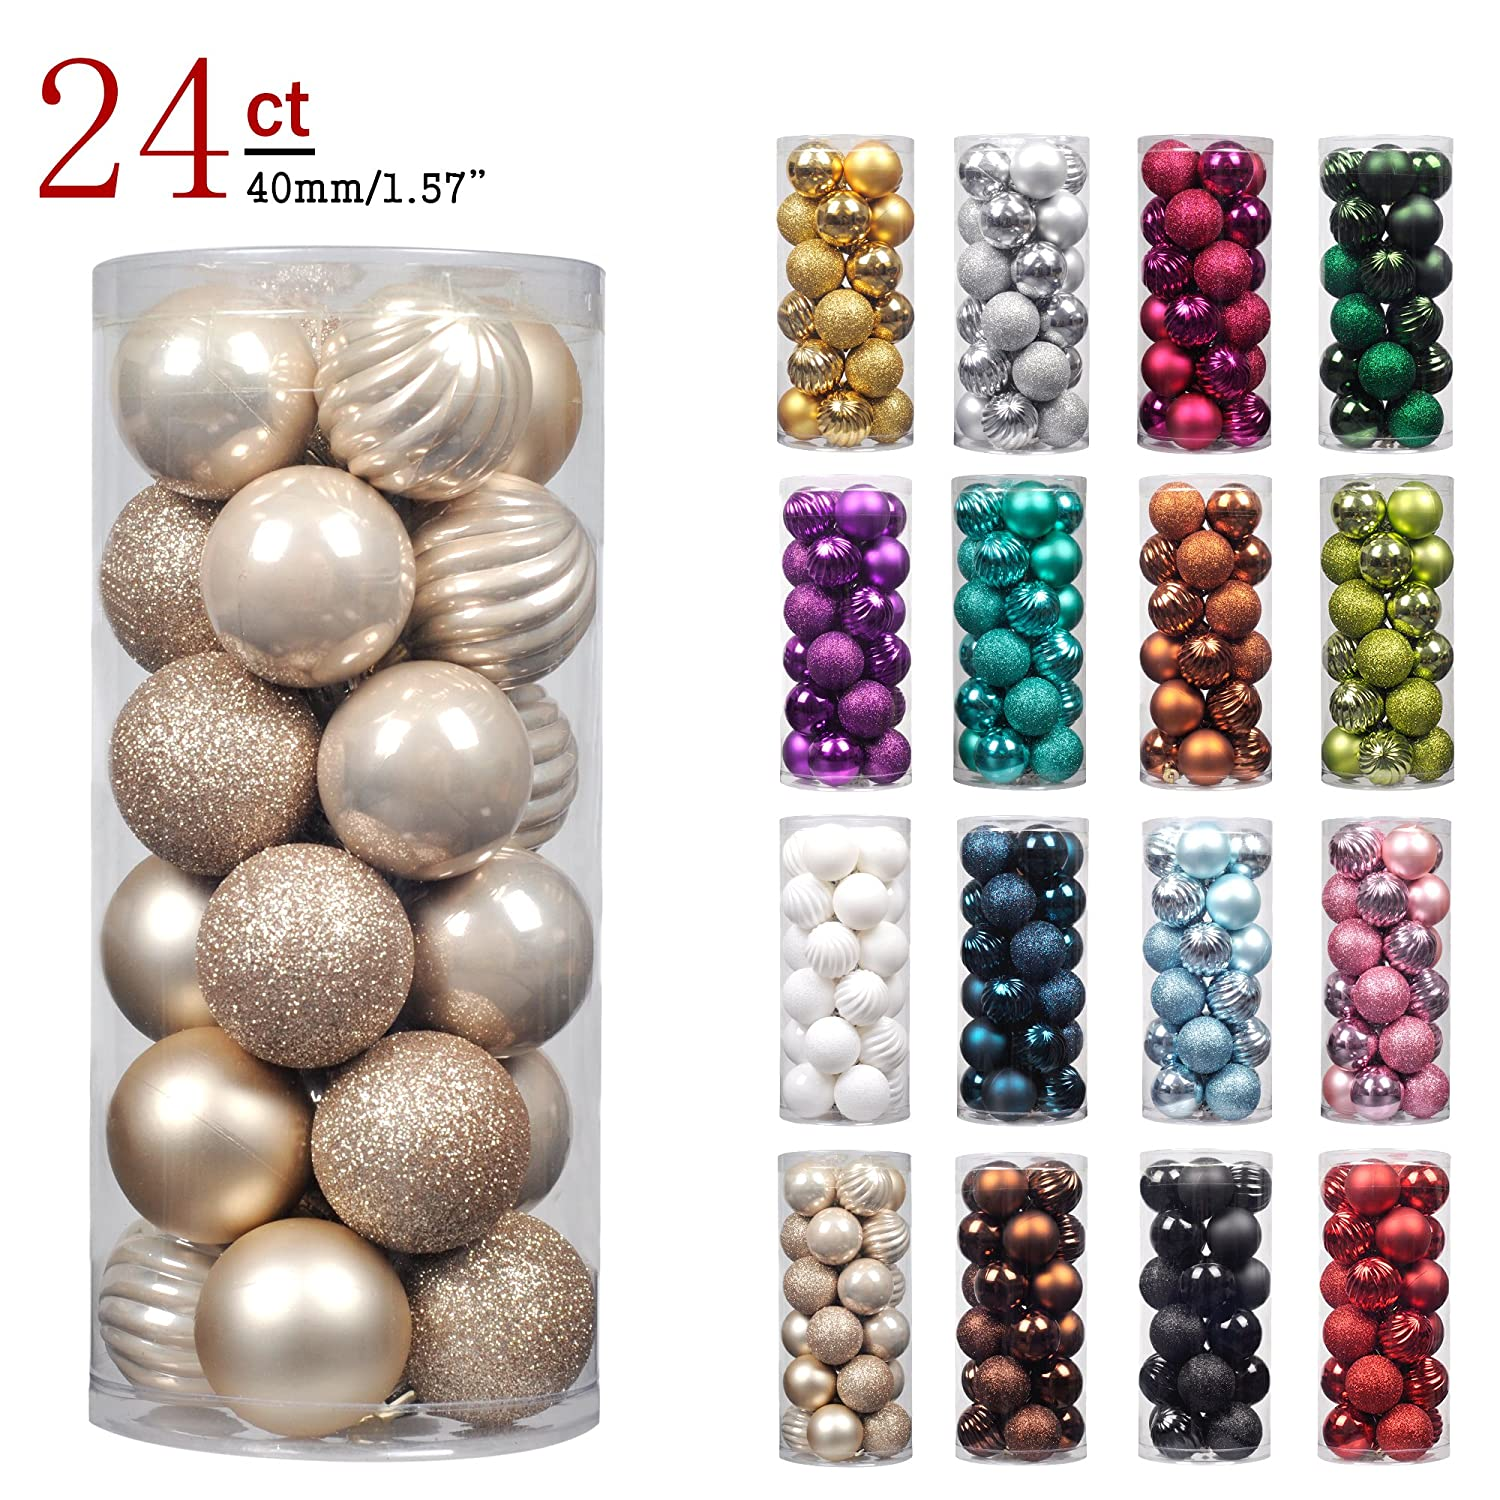 "KI Store 24ct Christmas Ball Ornaments Shatterproof Christmas Decorations Tree Balls Pastel for Holiday Wedding Party Decoration, Tree Ornaments Hooks included 40mm 4 Finished(1.57"" Champagne)"